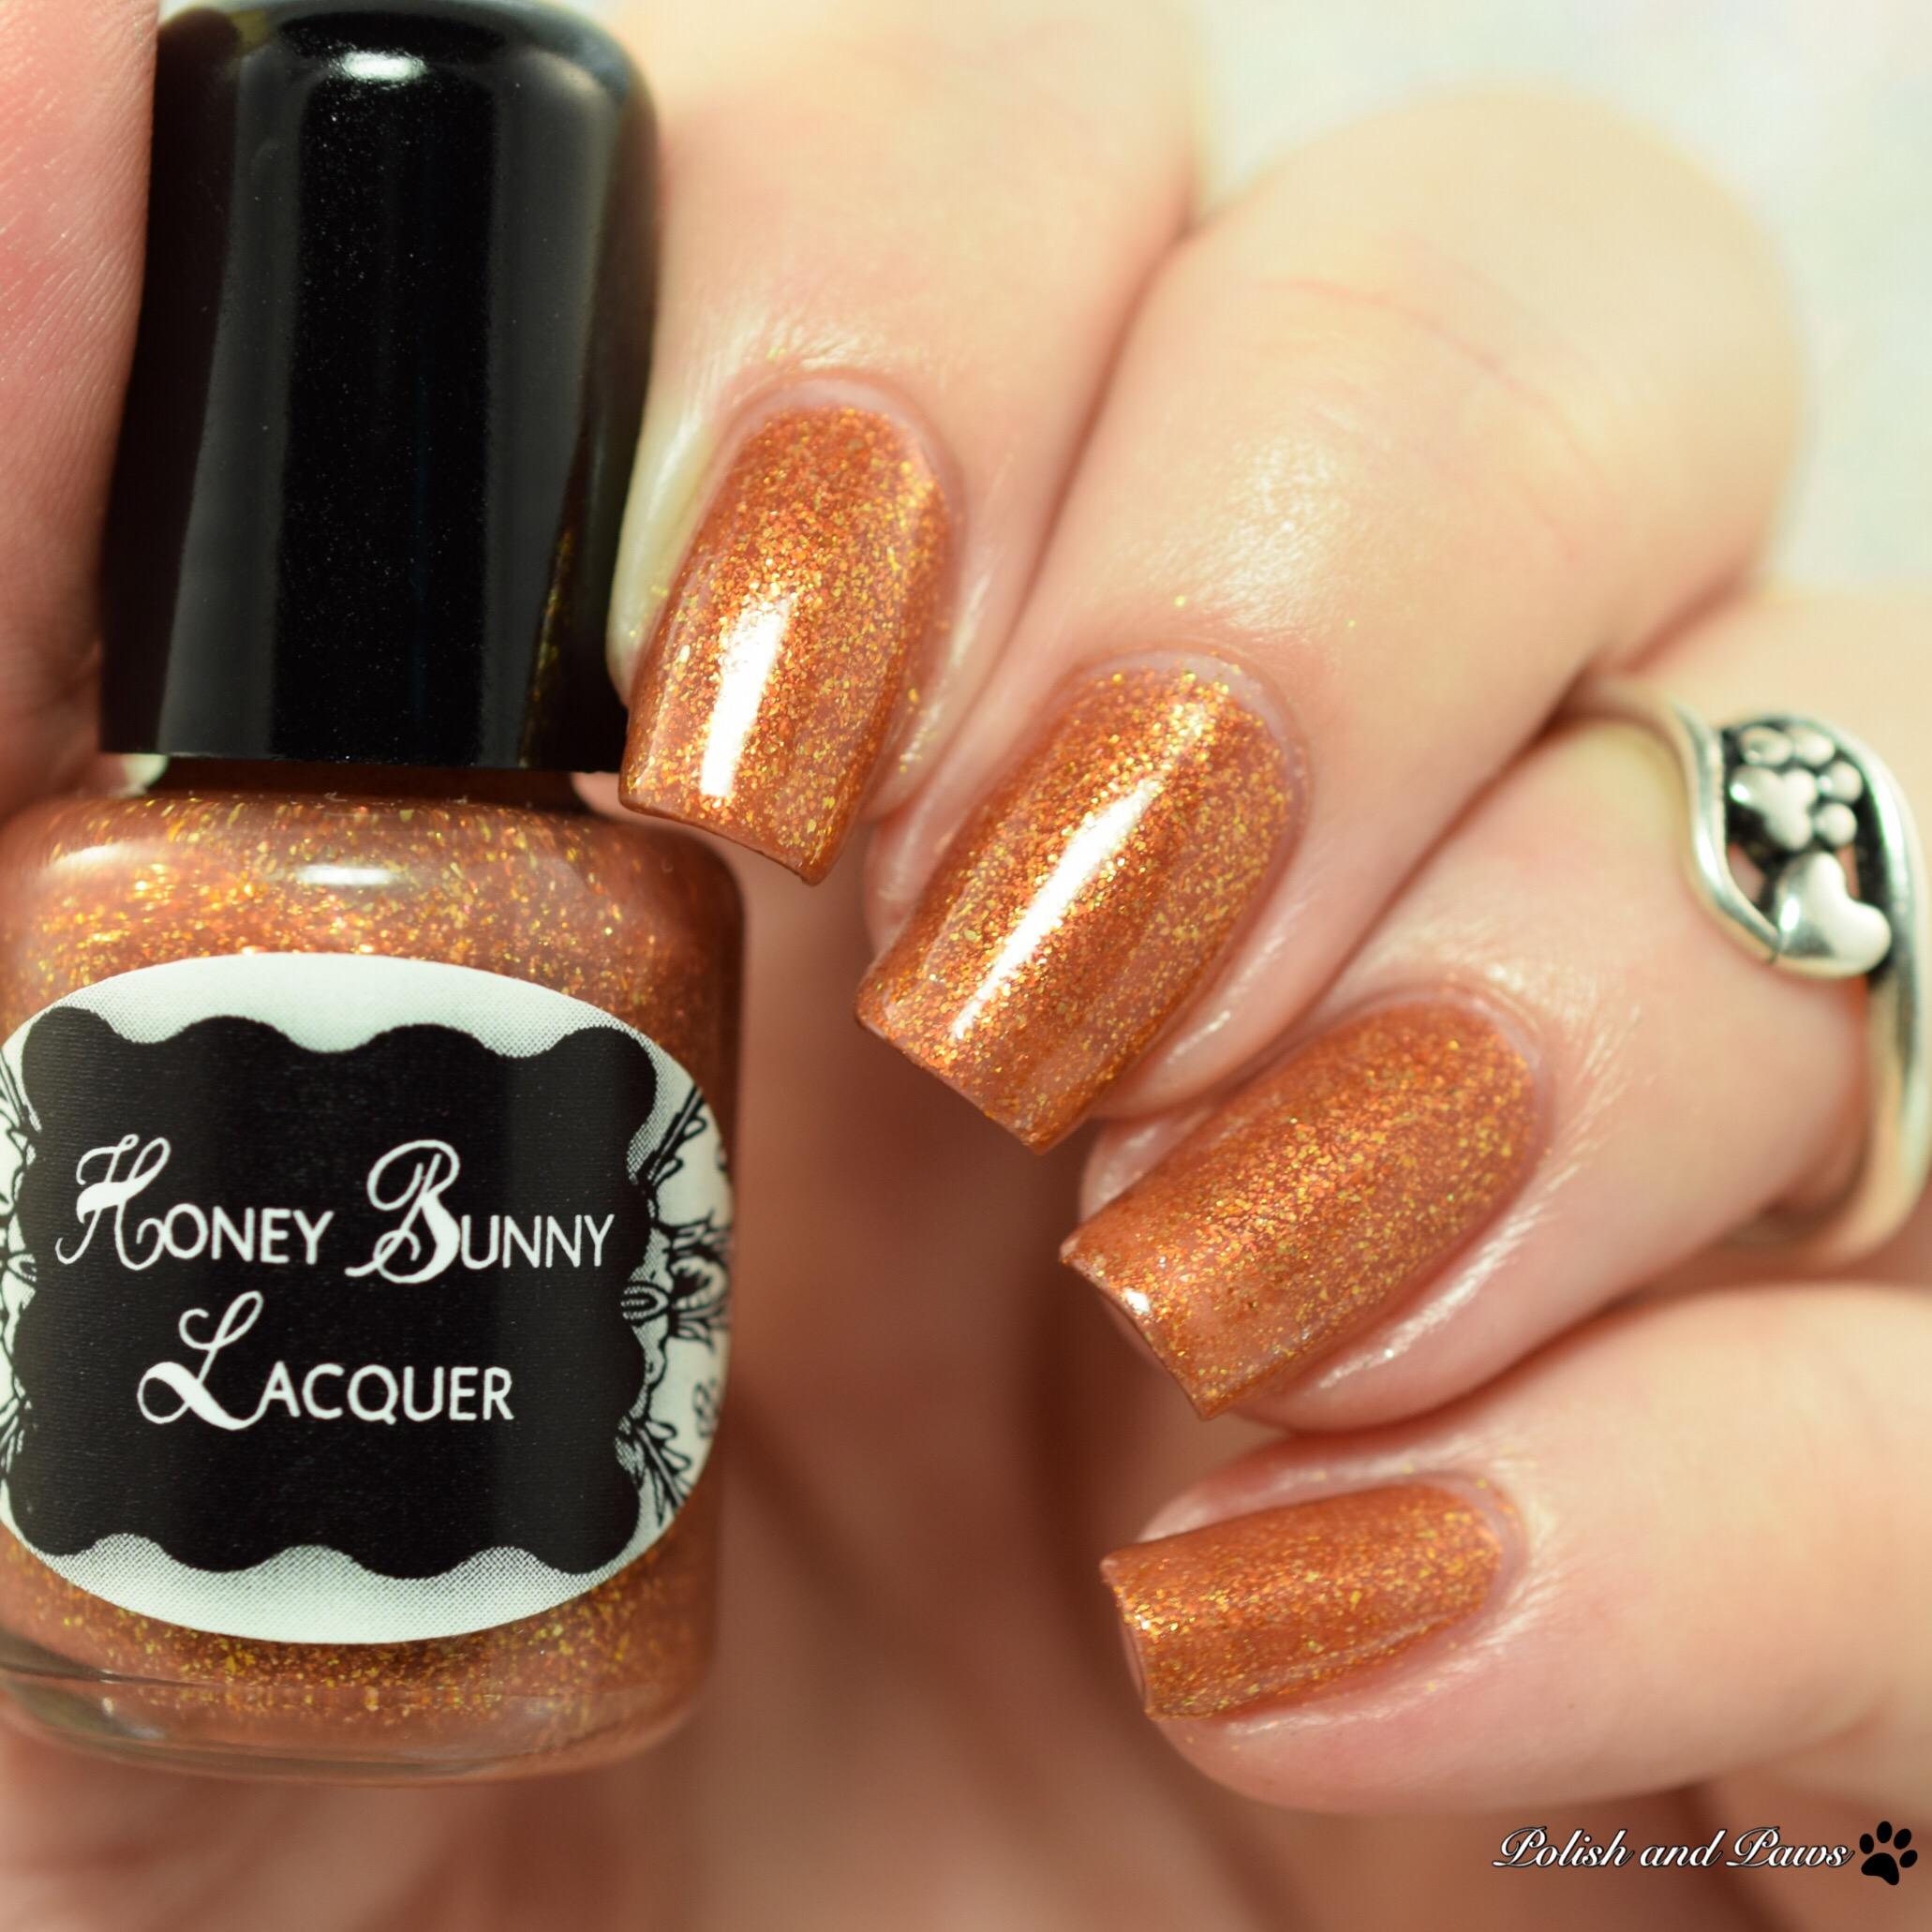 Honey Bunny Lacquer Indian Sunset